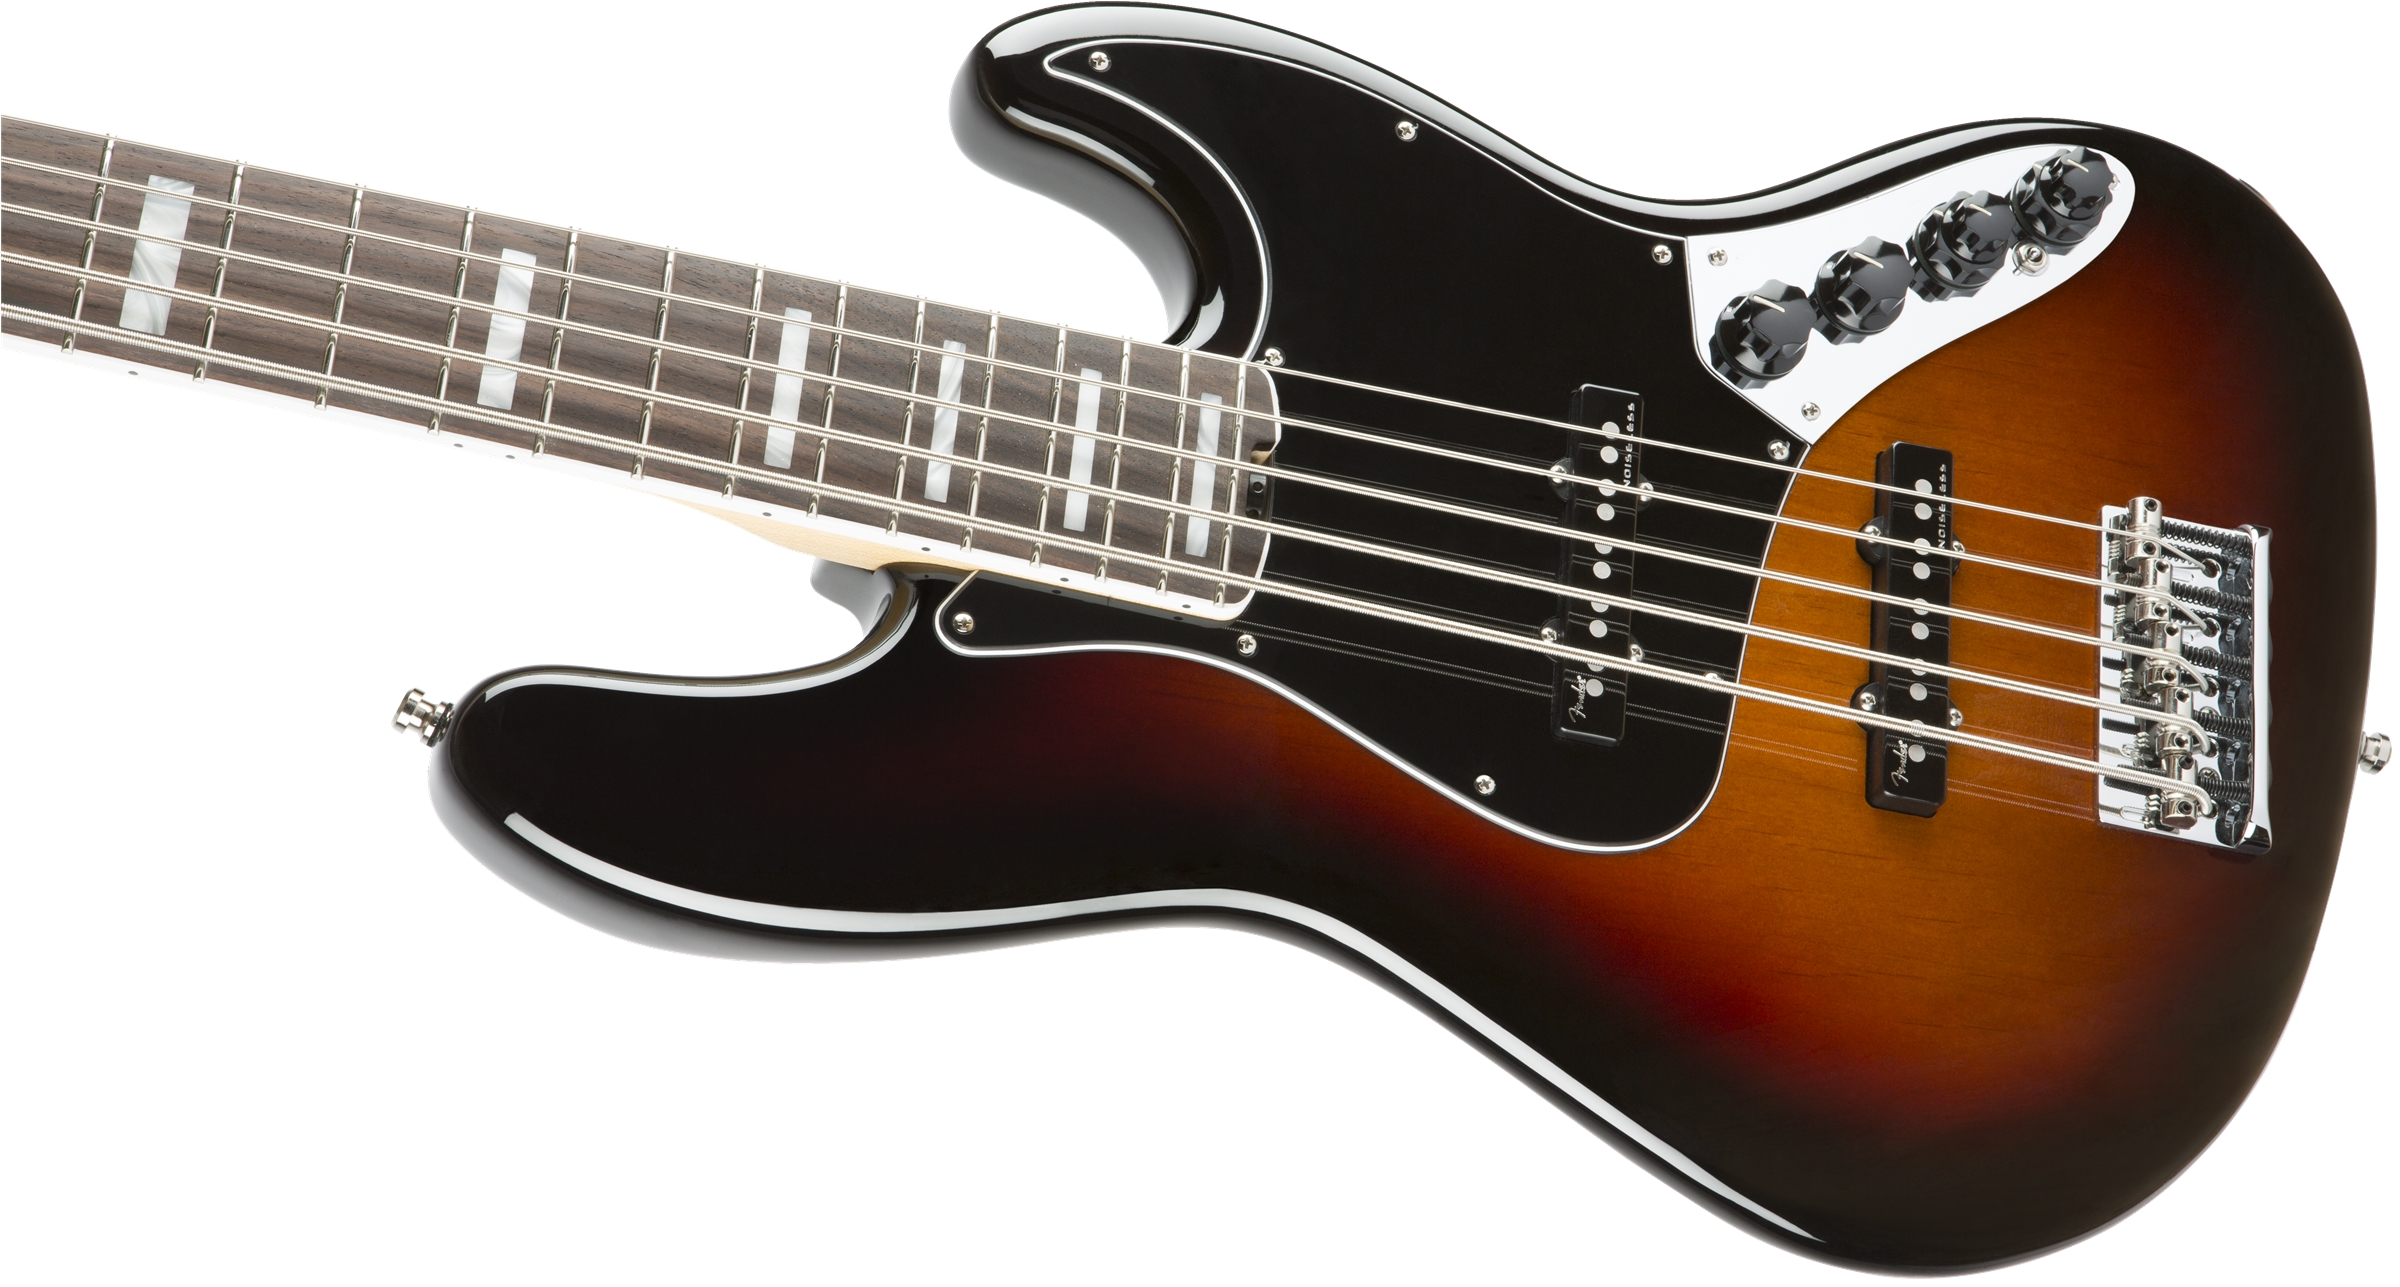 [DVZP_7254]   NZ_6031] Fender American Deluxe Jazz Bass Wiring Diagram Schematic Wiring | Fender Jazz Bass 24 Wiring Diagram |  | Peted Genion Stic Loida Tacle Bios Subd Hyedi Intap Trons Inoma Unec Inkl  Gho Caci Arch Dome Mohammedshrine Librar Wiring 101